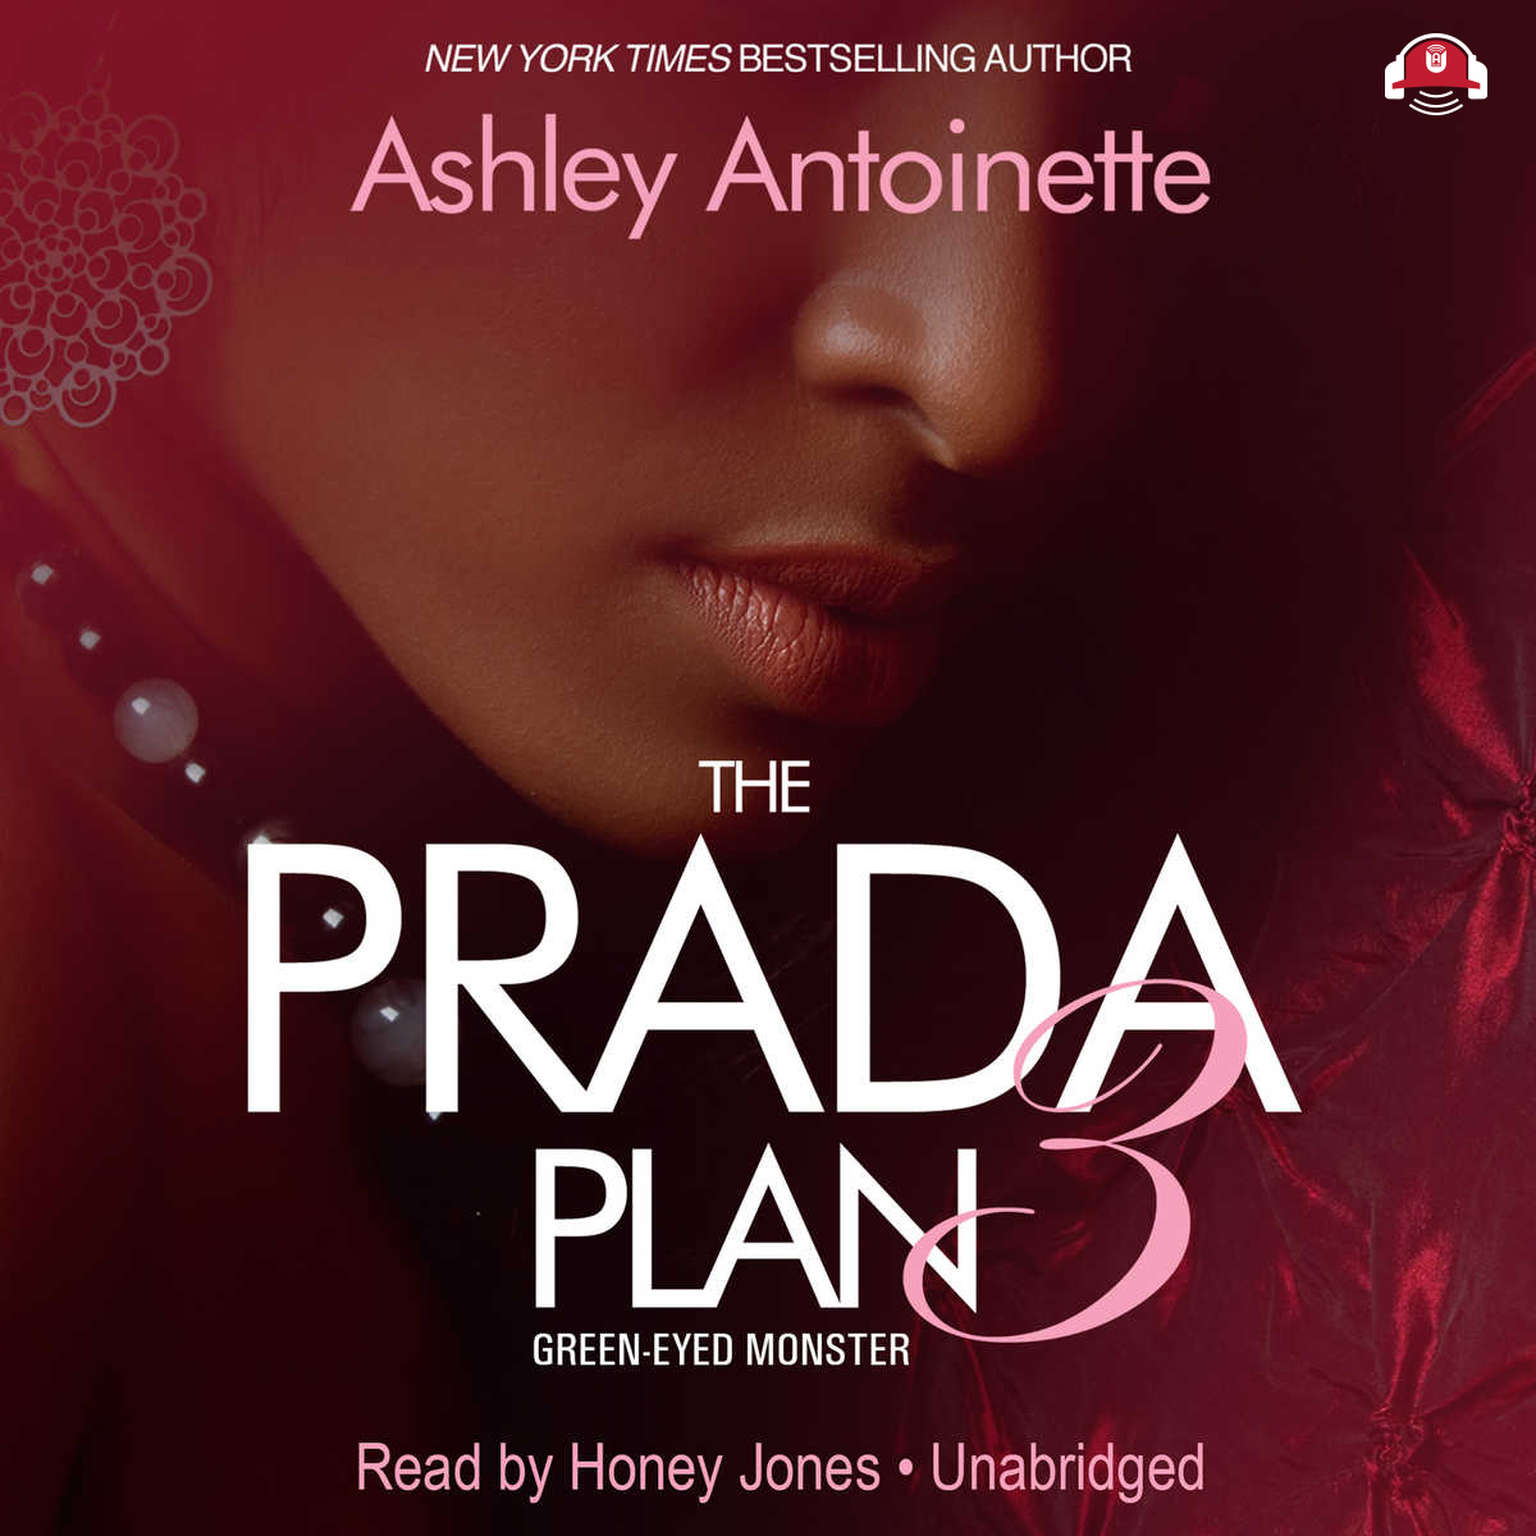 Printable The Prada Plan 3: Green-Eyed Monster Audiobook Cover Art